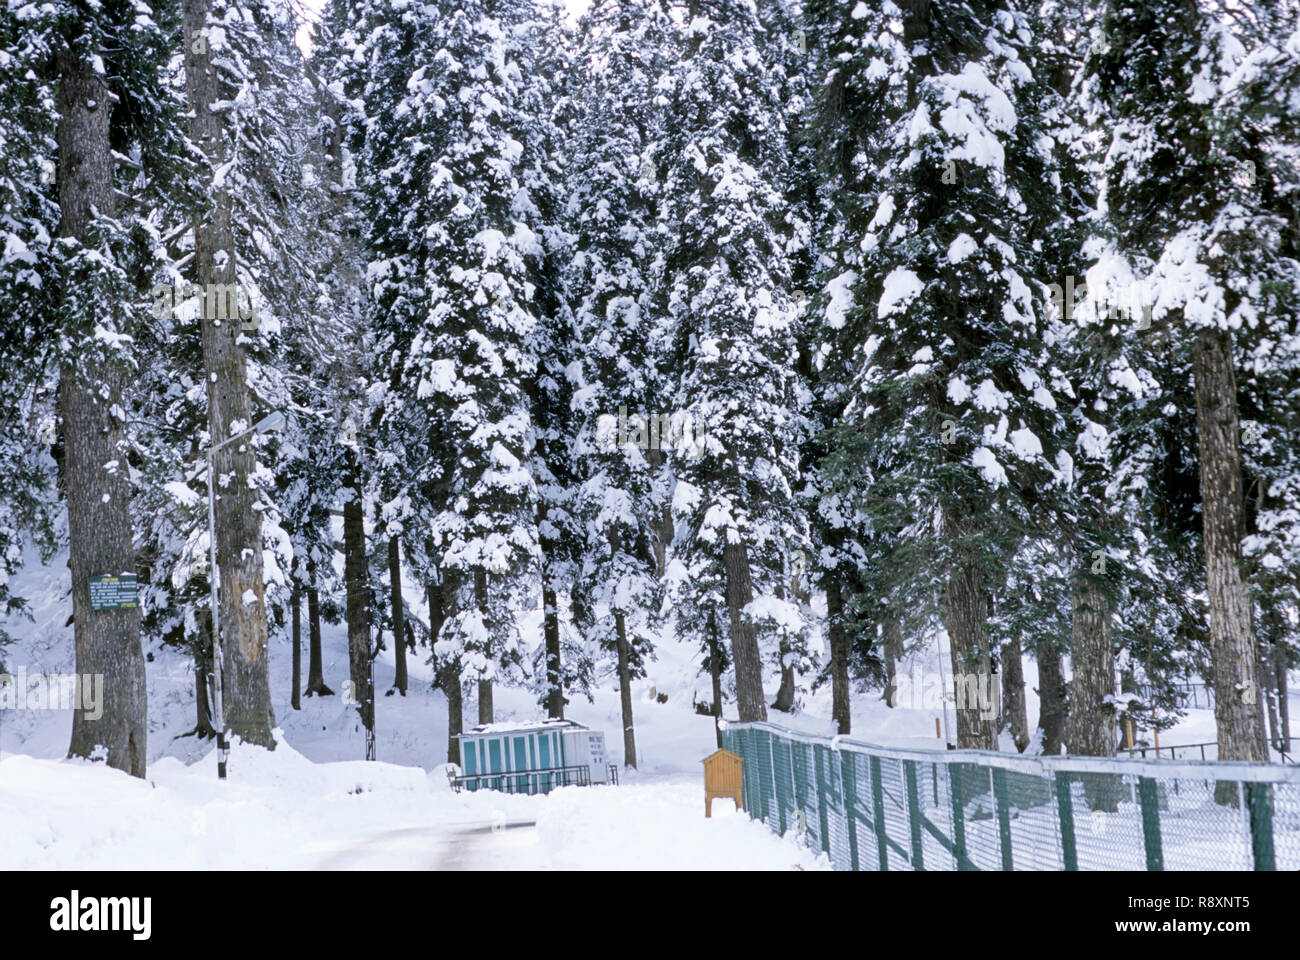 winter season, snowfall in gulmarg, jammu and kashmir, india